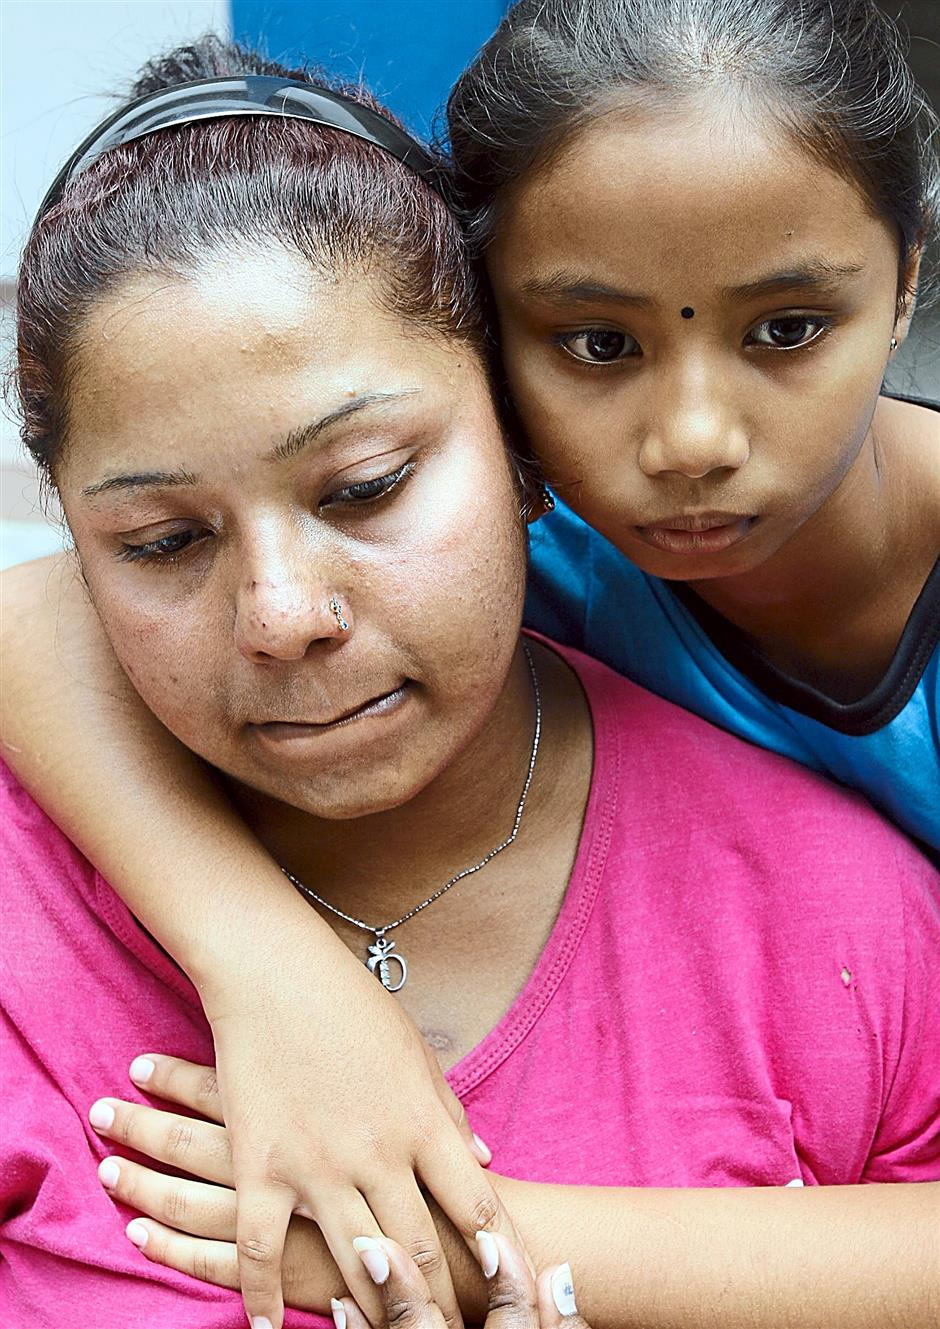 S.Deepa with her nine-year-old daughter V.Sharmila after lodging a report at the Seremban 2 police station. UU BAN/The Star